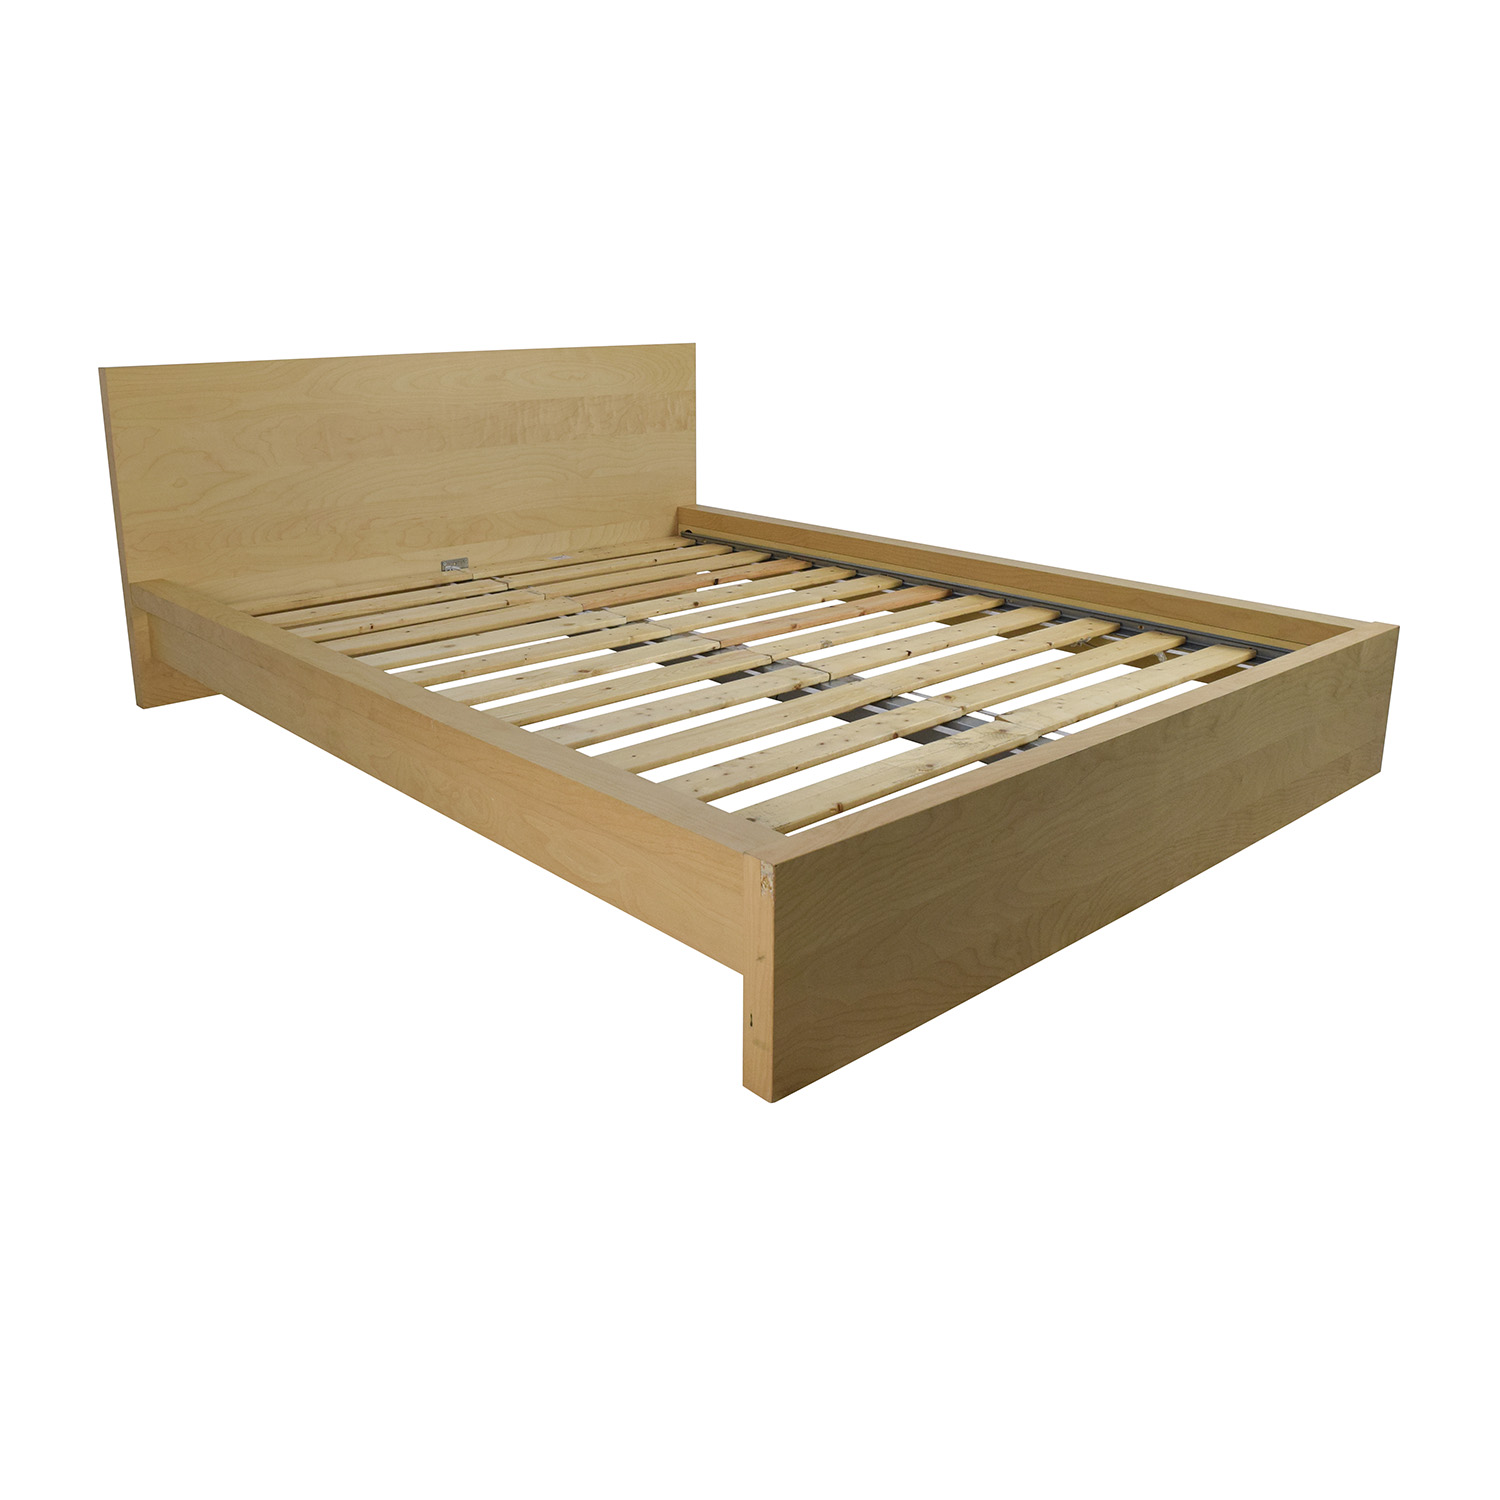 62 off ikea ikea sultan queen bed frame beds for Queen size bed ikea